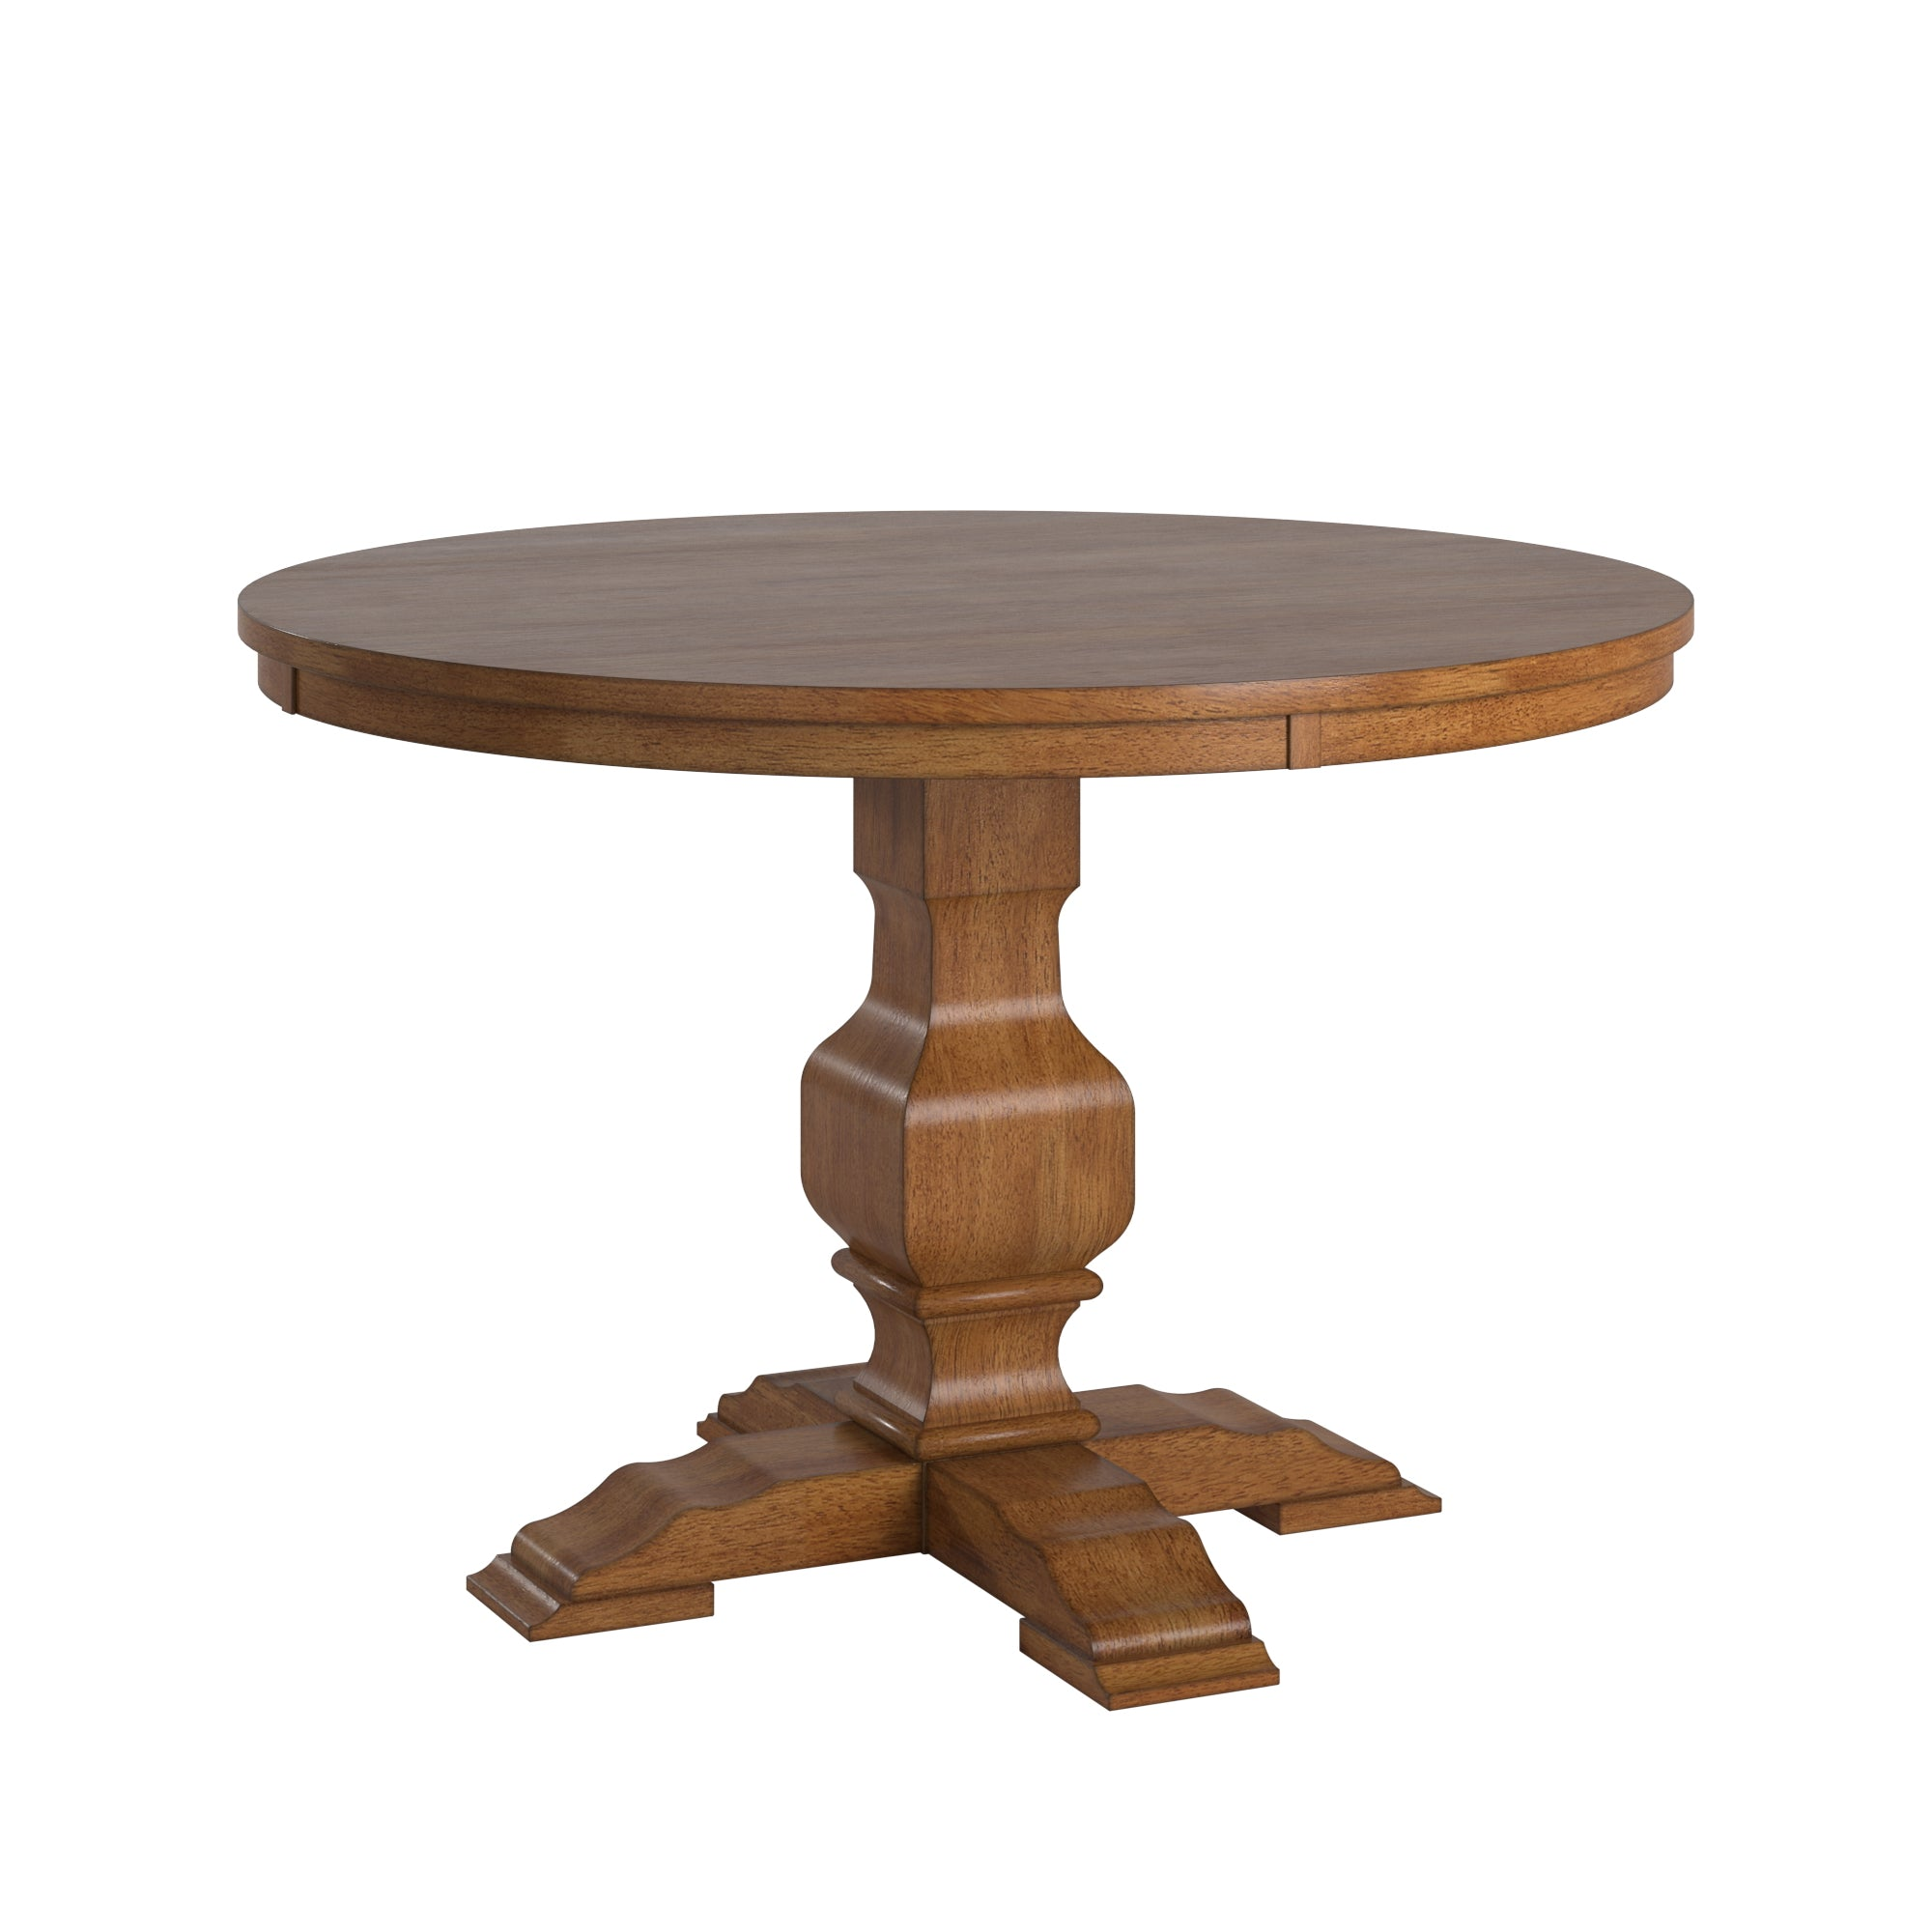 Two-Tone Round Solid Wood Top Dining Table - Oak Top with Oak Base Color Finish